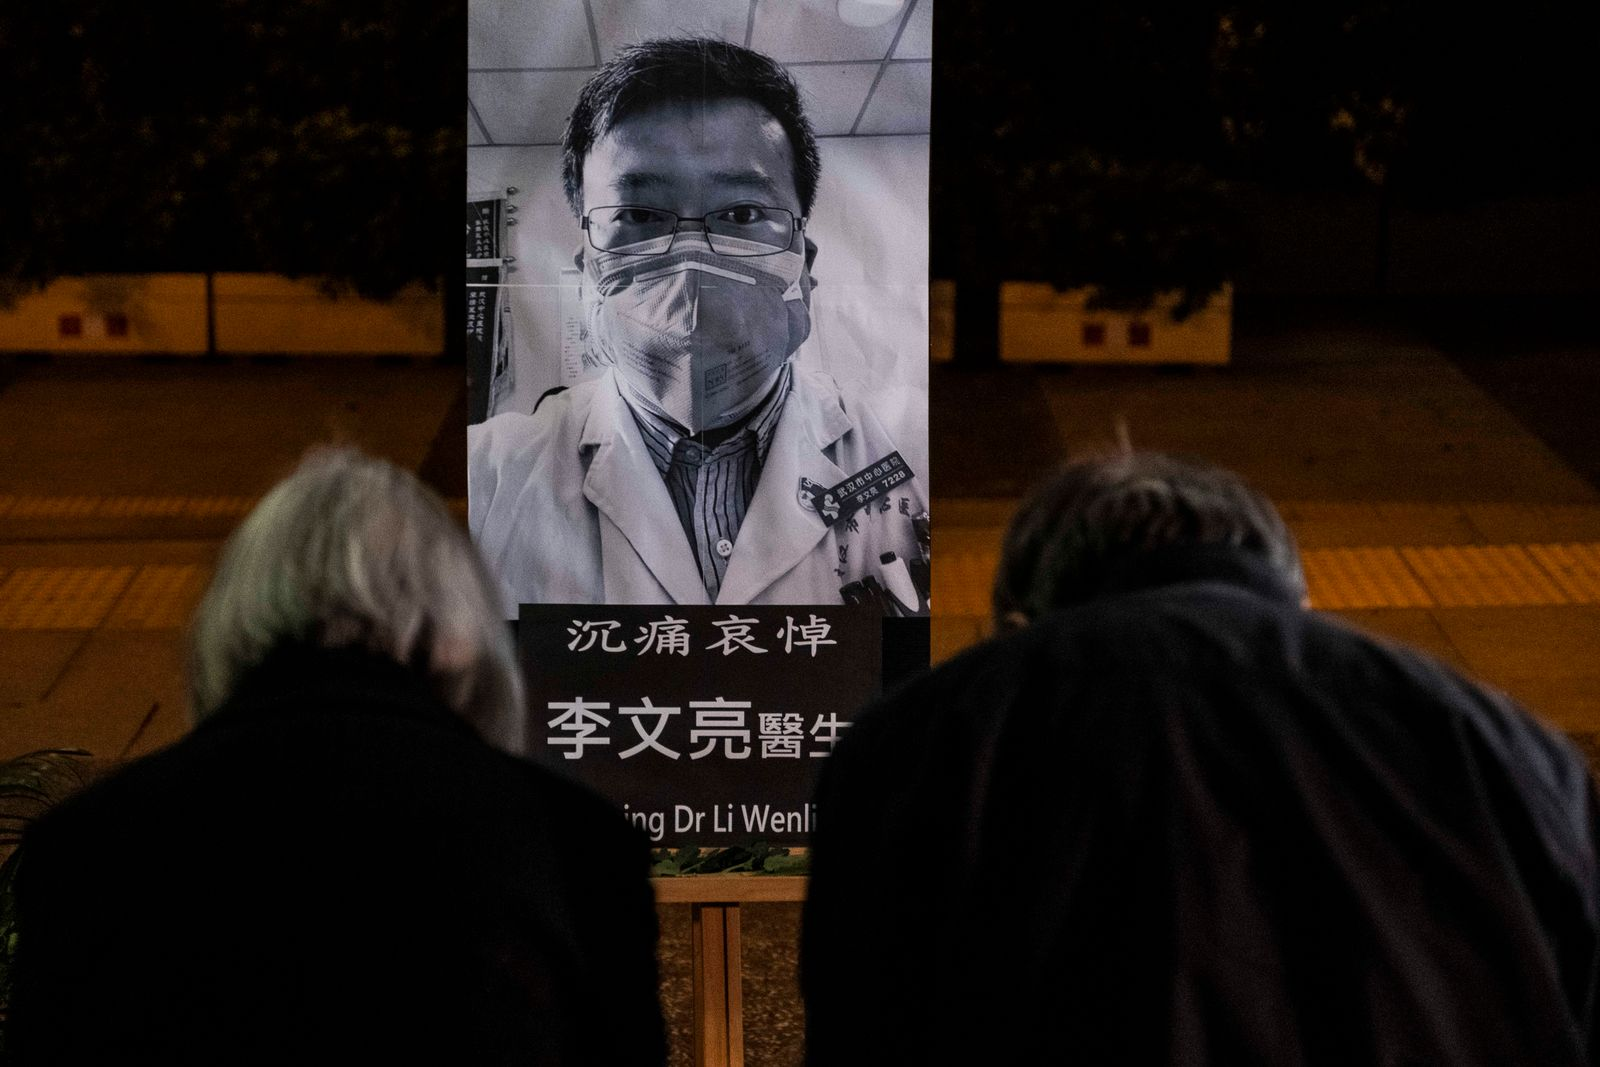 People pay respects at a memorial to Li Wenliang, who was silenced by police for being one of the first to warn about the coronavirus, in Hong Kong, Feb. 7, 2020. (Lam Yik Fei/The New York Times)